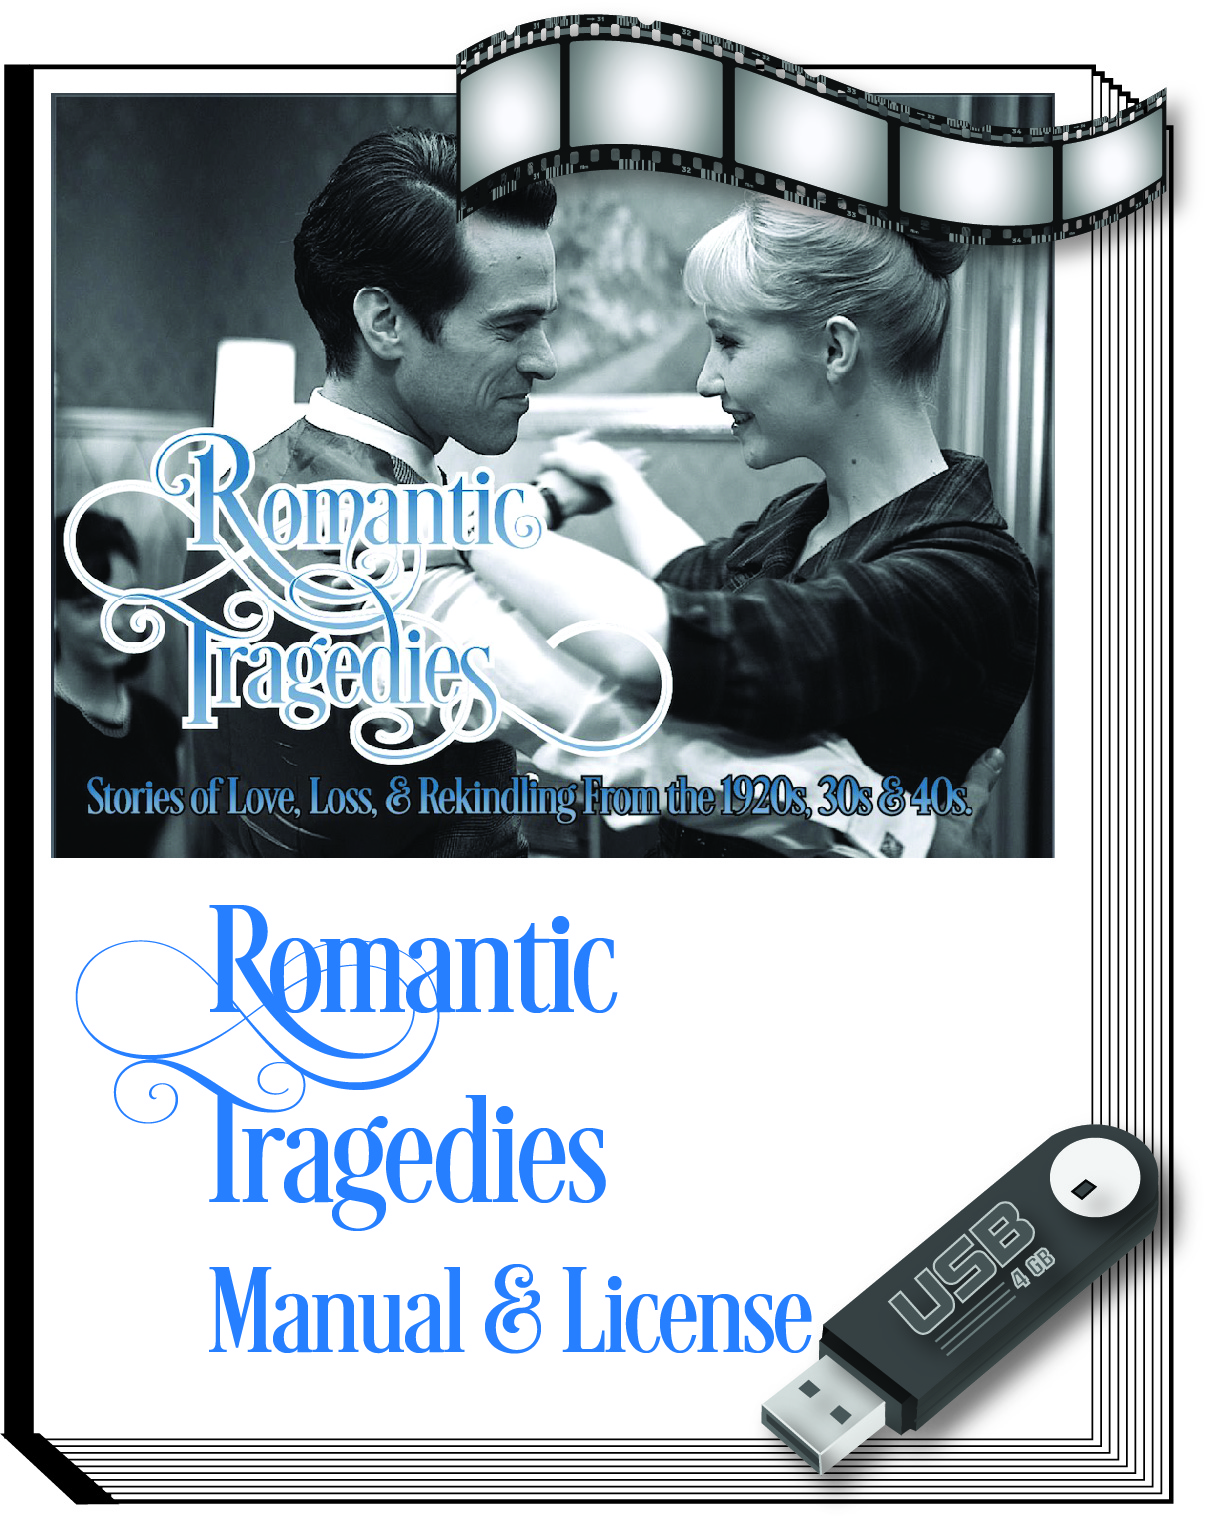 Romantic Tragedies Show